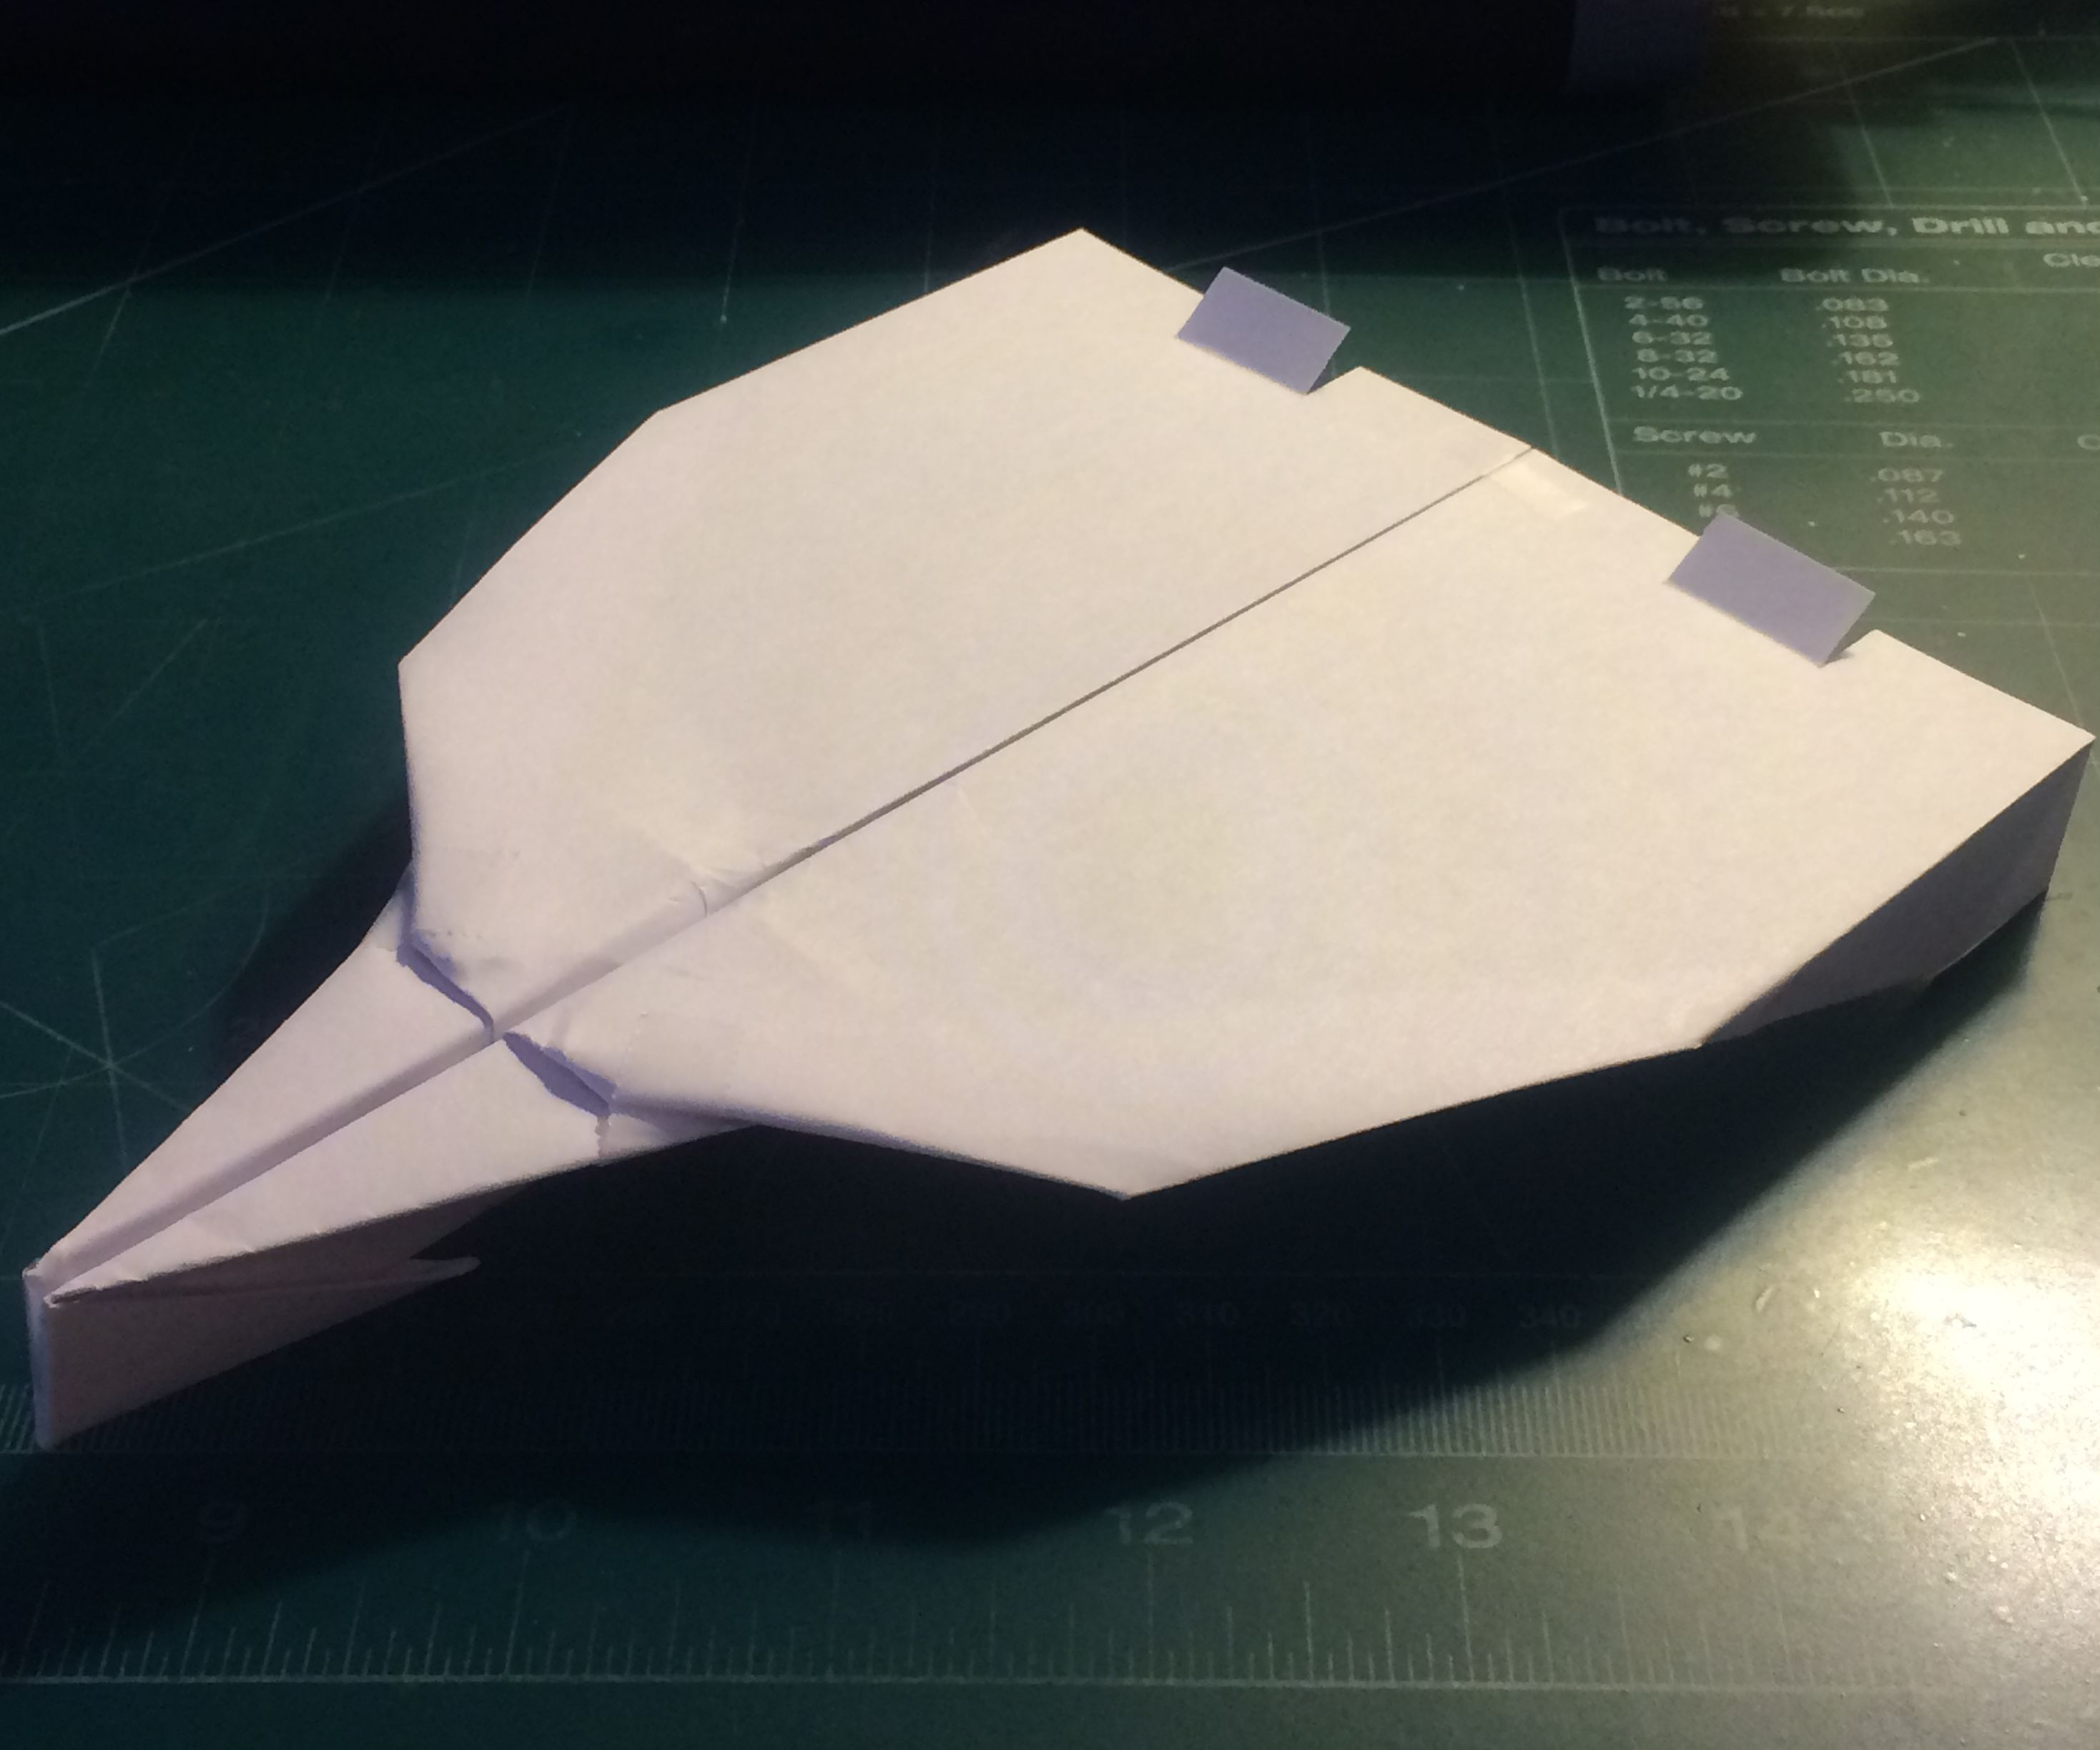 How To Make The Turbo UltraSabre Paper Airplane